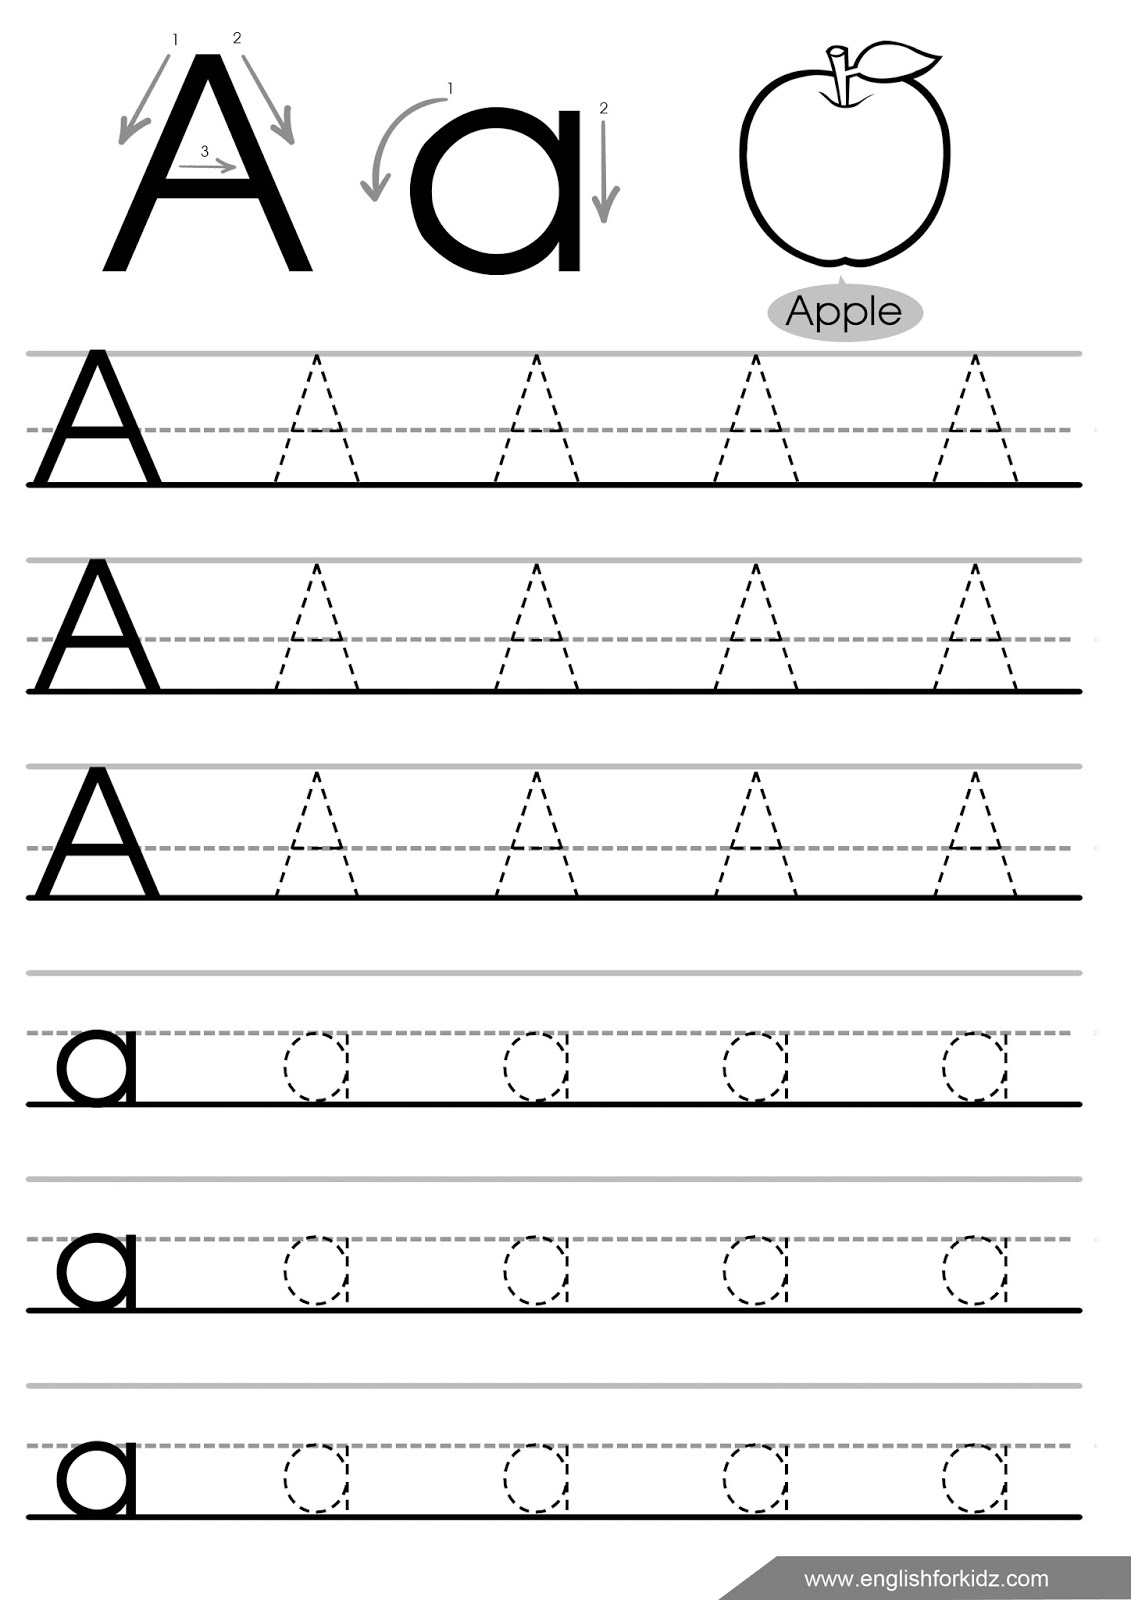 Letter Tracing Preschool Worksheet - Clover Hatunisi with Letter Tracing Make Your Own